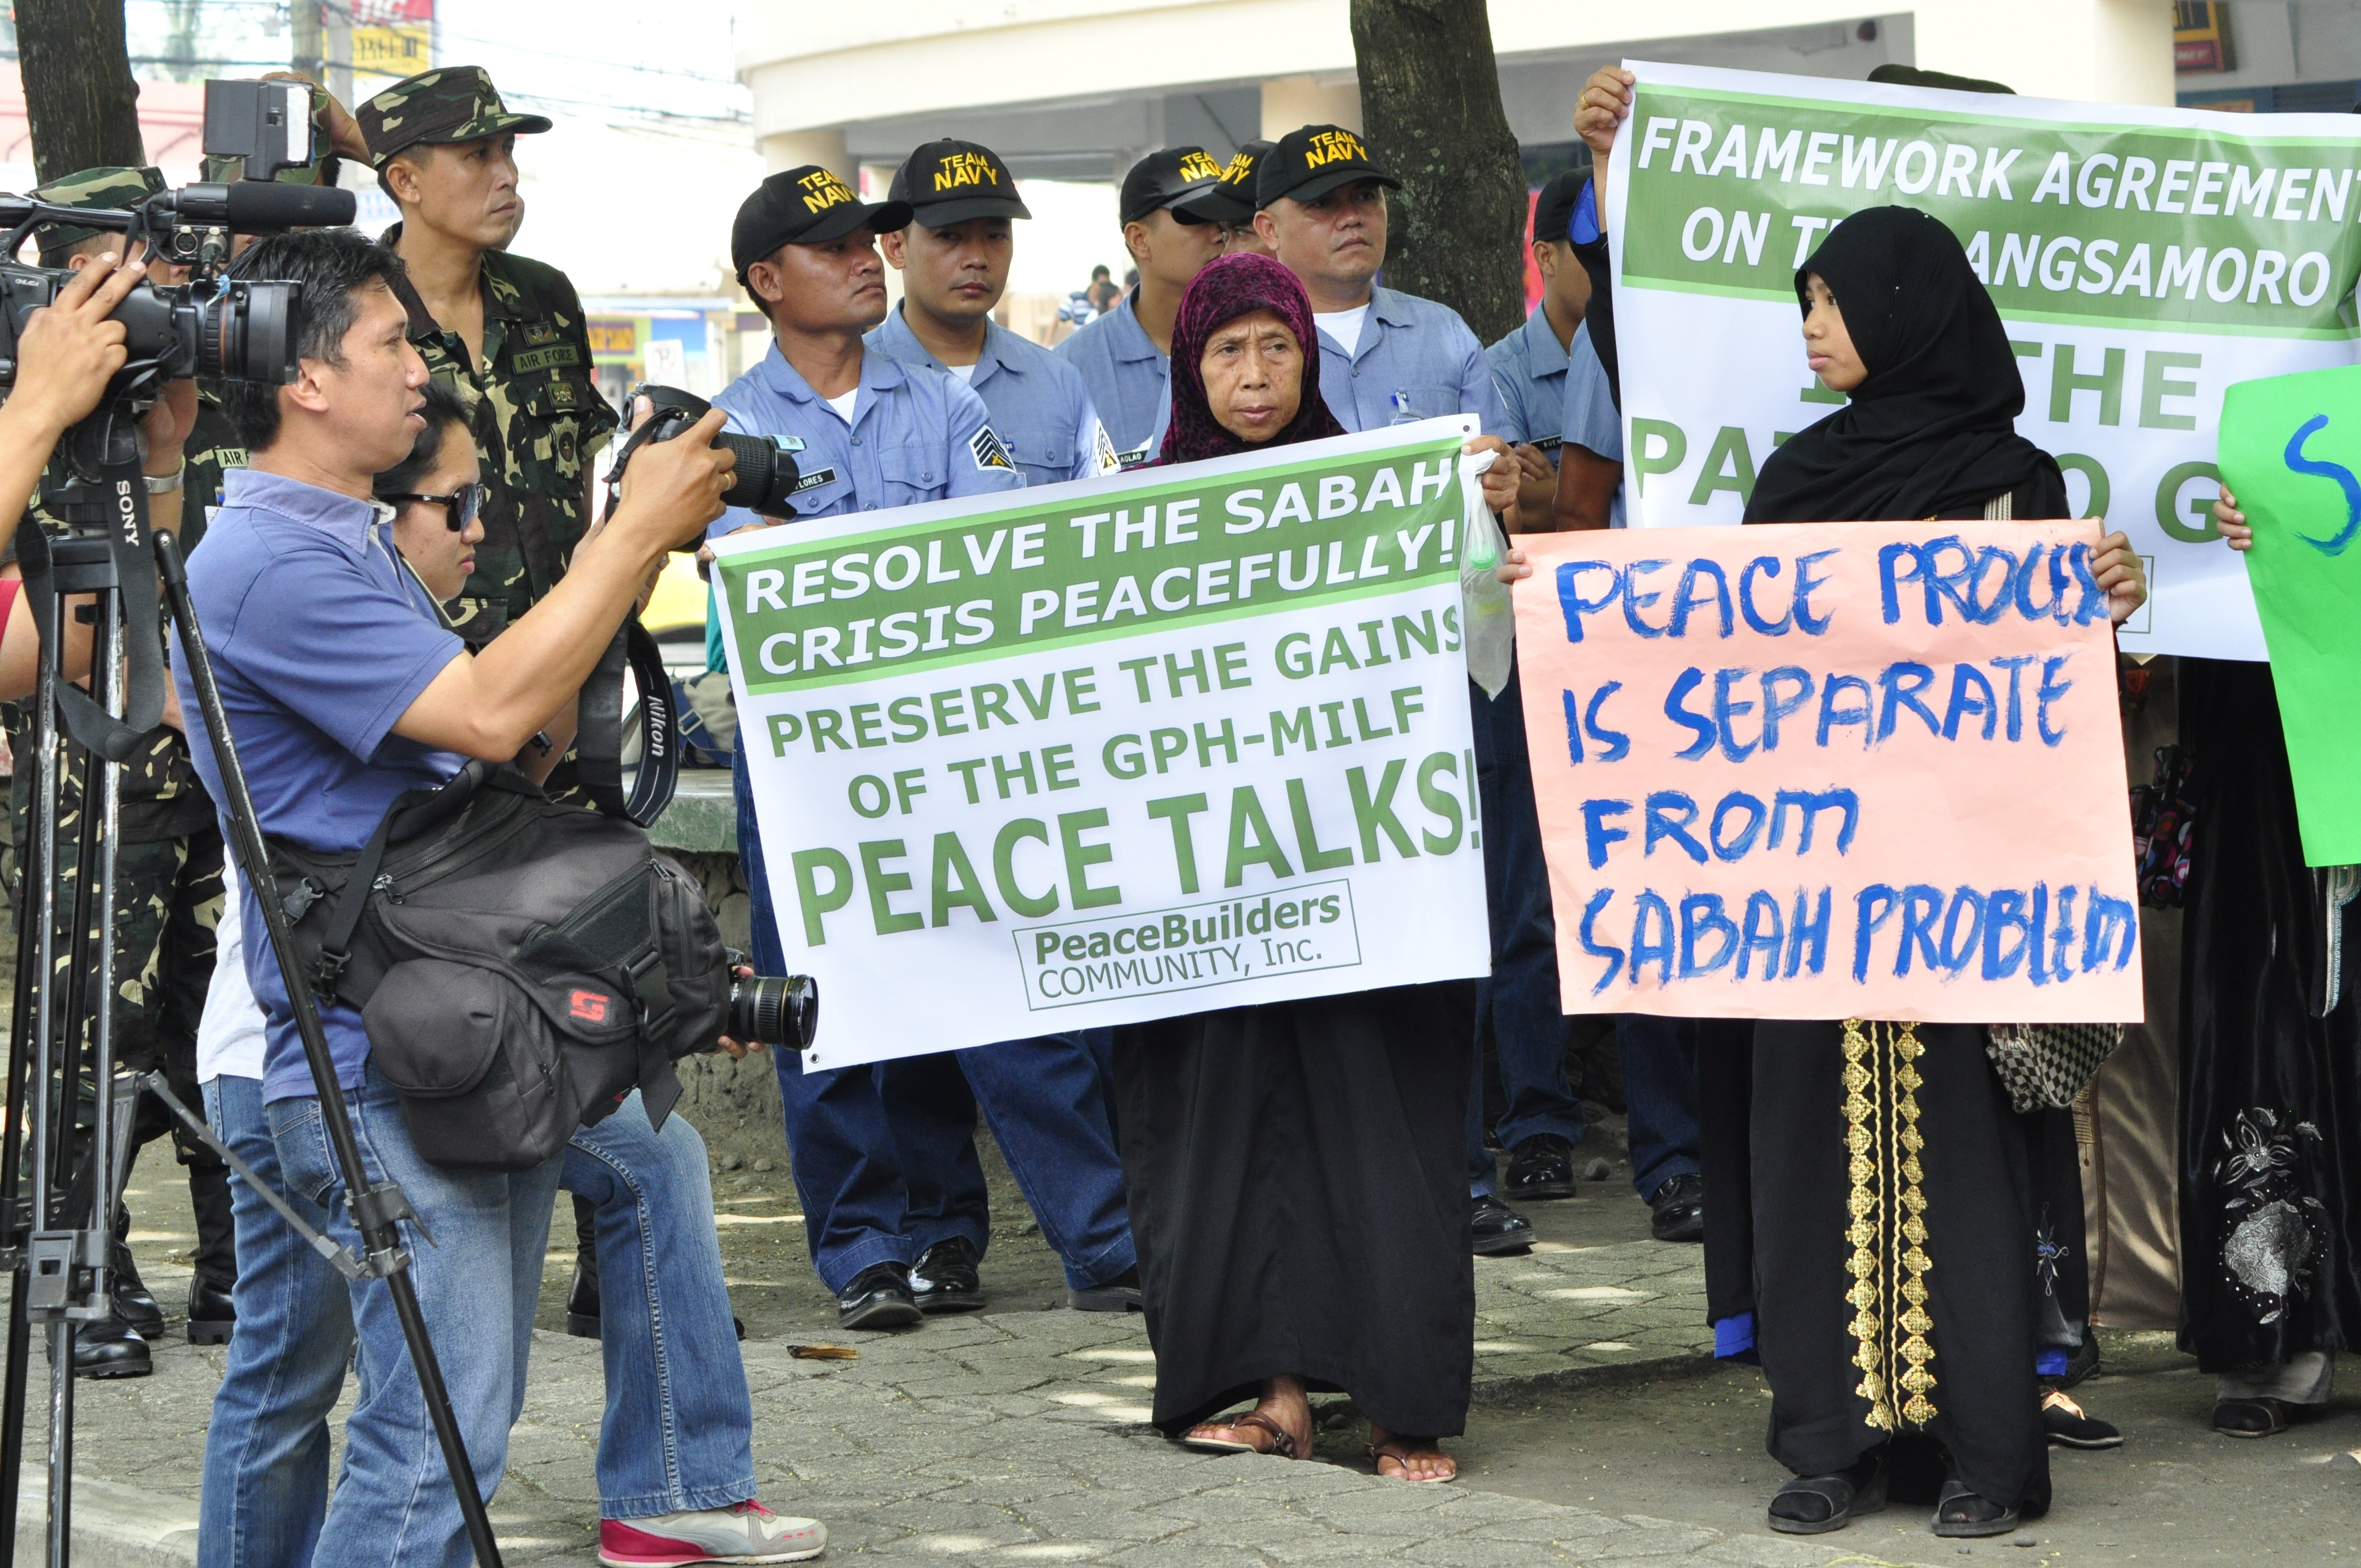 Gph milf peace talks peacebuilders community inc in the midst of the sabah crisis and calls for war the framework agreement on the bangsamoro is the peaceful way to go the mindanao peoples caucus mpc platinumwayz